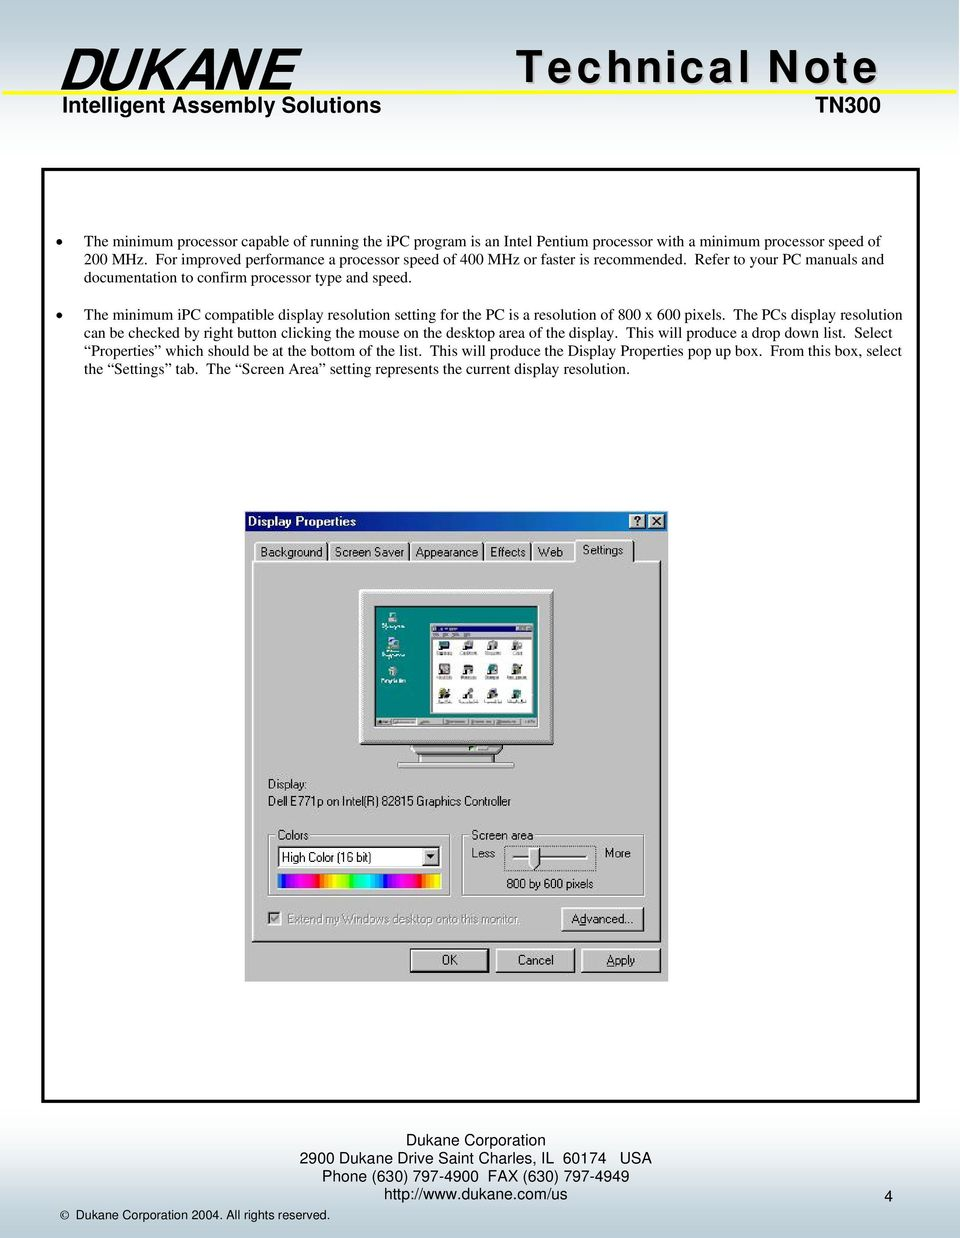 The minimum ipc compatible display resolution setting for the PC is a resolution of 800 x 600 pixels.